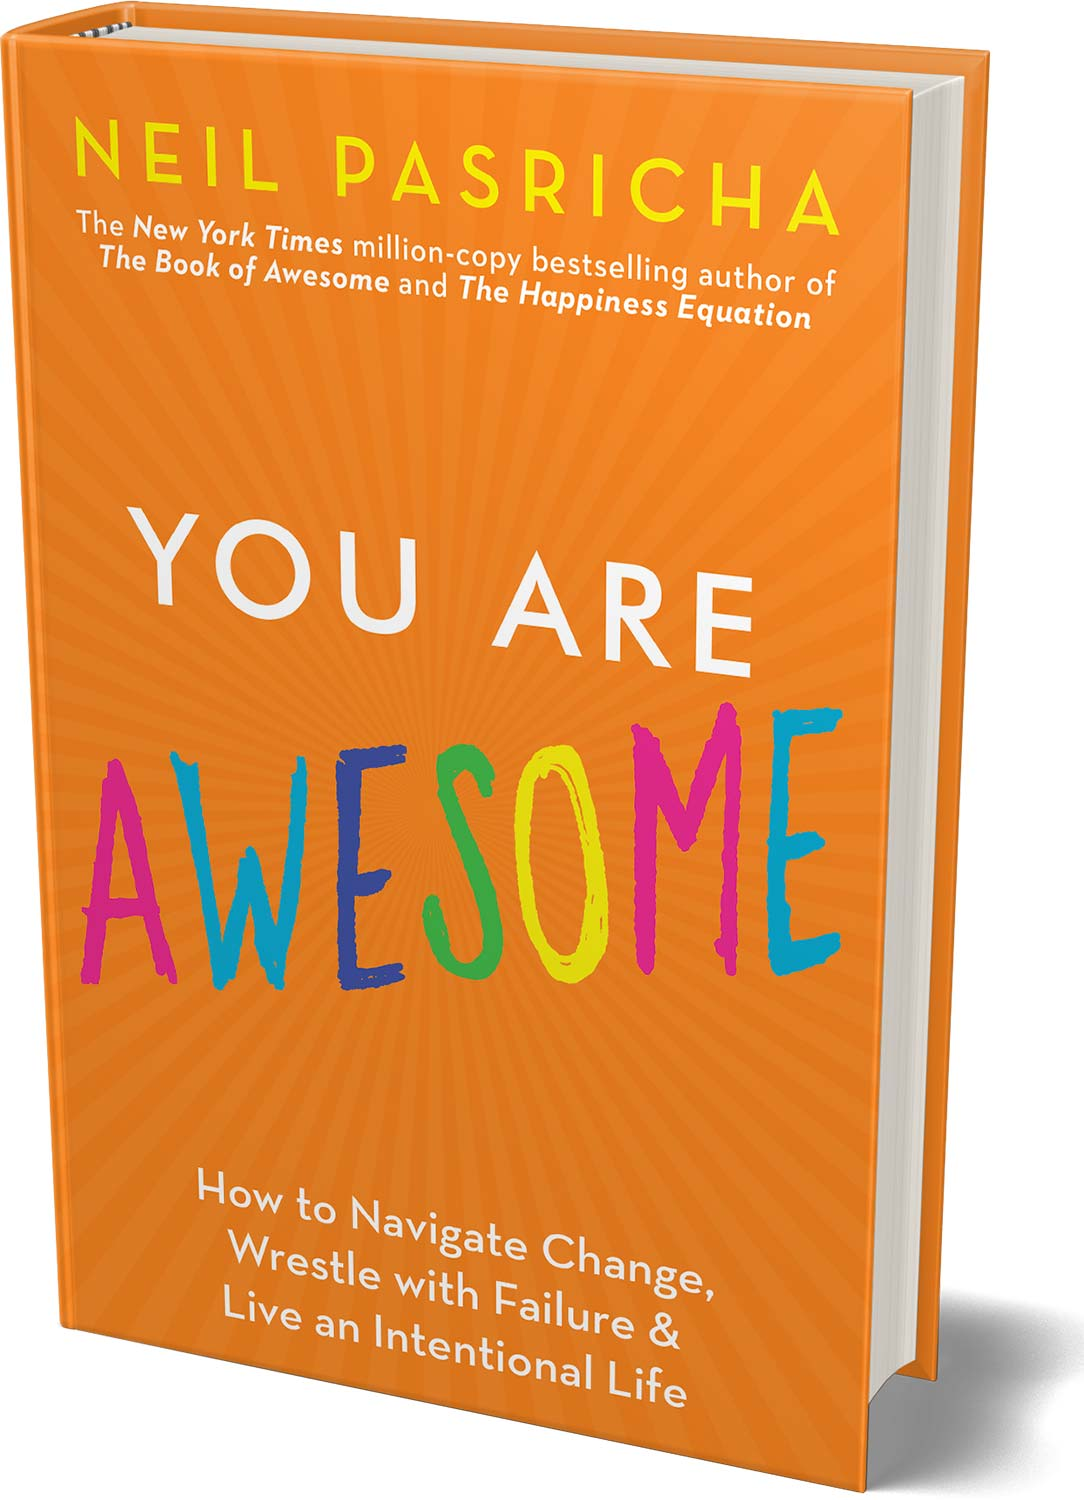 You are Awesome is Neil Pasricha\'s new book and the first I read. It\'s filled with useful tips and reflections on how you can be more awesome.  #Books #SelfHelp #BookBlogger #YouAreAwesome #Awesome   #NeilPasricha #ReadBetter #ReadHappy